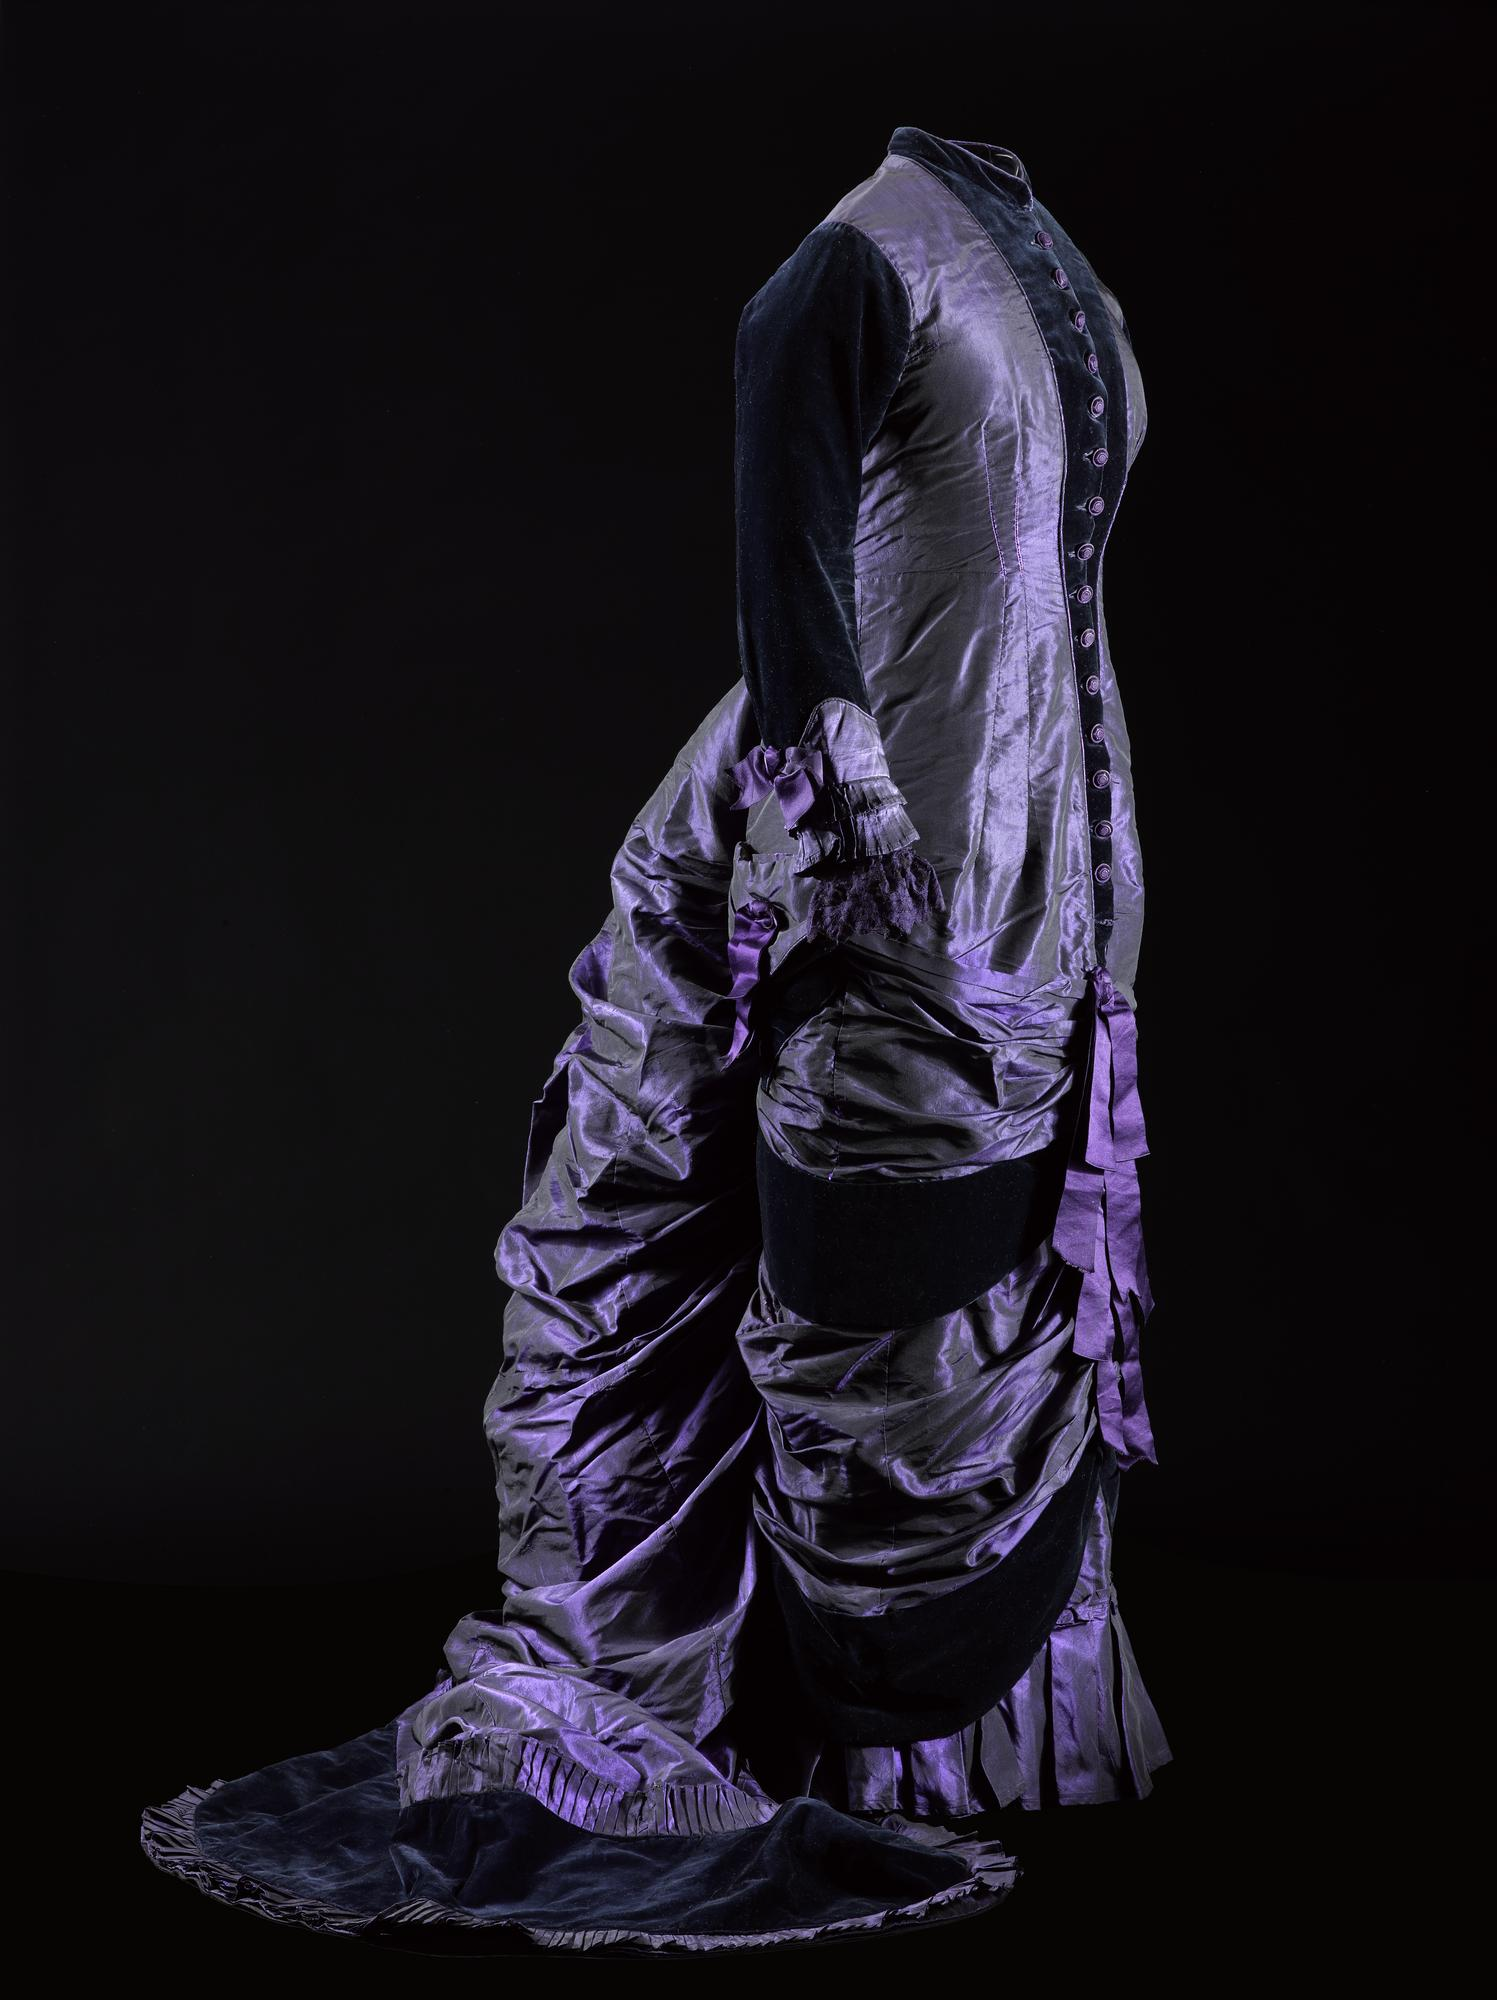 Woman's dress, in purple and black shot silk, trimmed with silk velvet, constructed with the princess line, with a high round neckline and centre front fastening trimmed with velvet, full-length velvet sleeves with shot silk cuffs trimmed with lace, narrow skirt with train falling in swags and cascade, with purple silk ribbons trimming the centre front, panels of velvet and velvet finishing the train: British, c. 1874 - 1879.